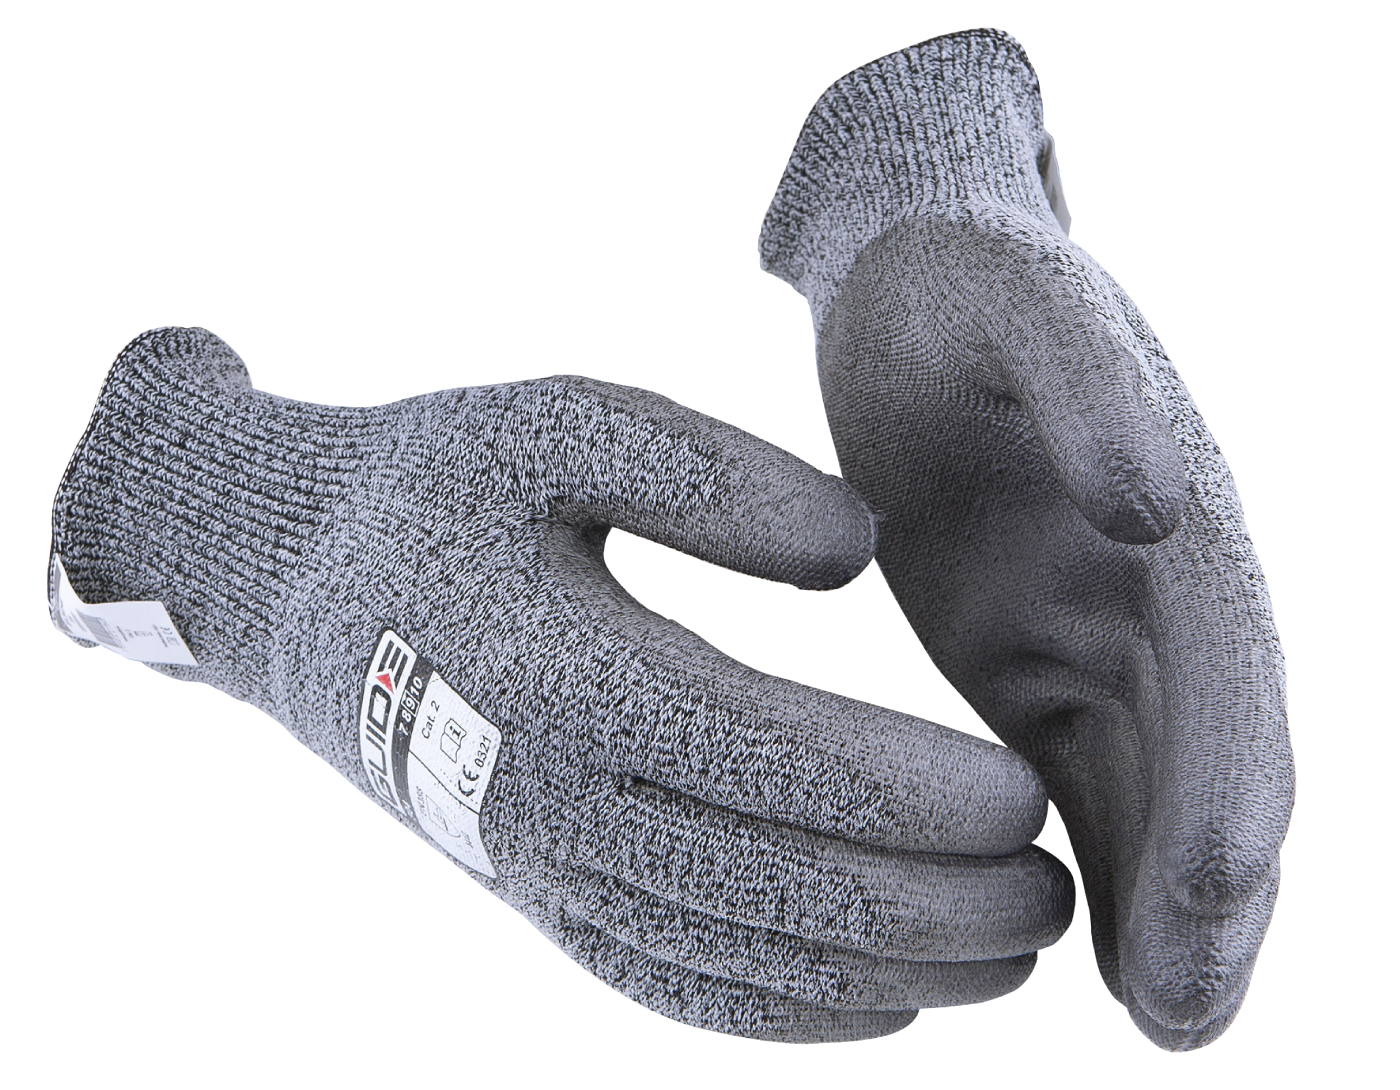 Cut Protection Glove GUIDE 304